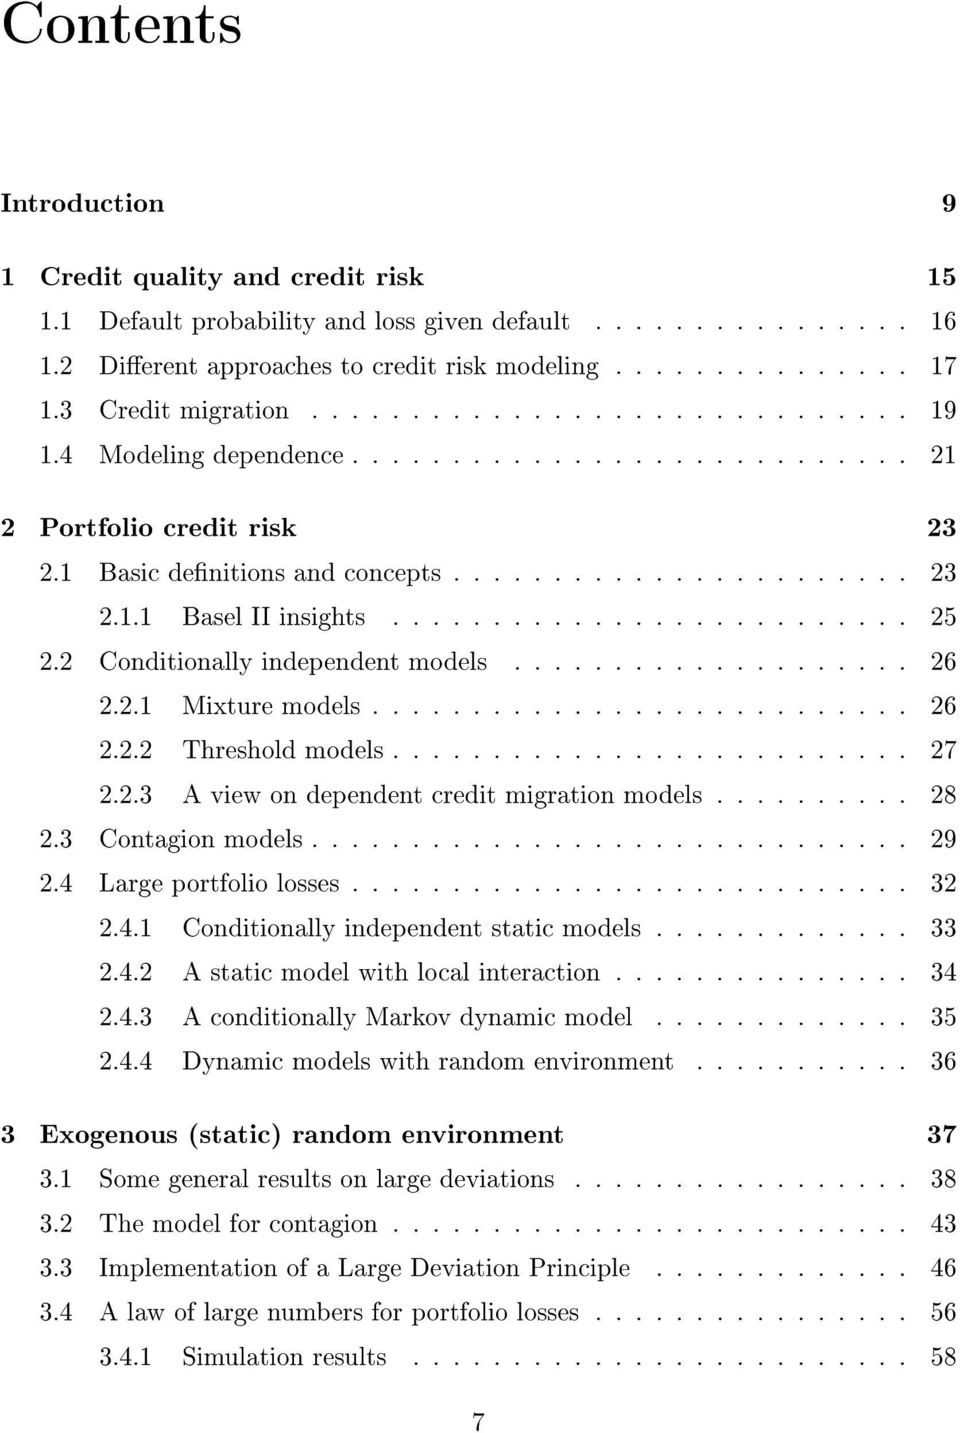 2 Conditionally independent models.................... 26 2.2. Mixture models........................... 26 2.2.2 Threshold models.......................... 27 2.2.3 A view on dependent credit migration models.